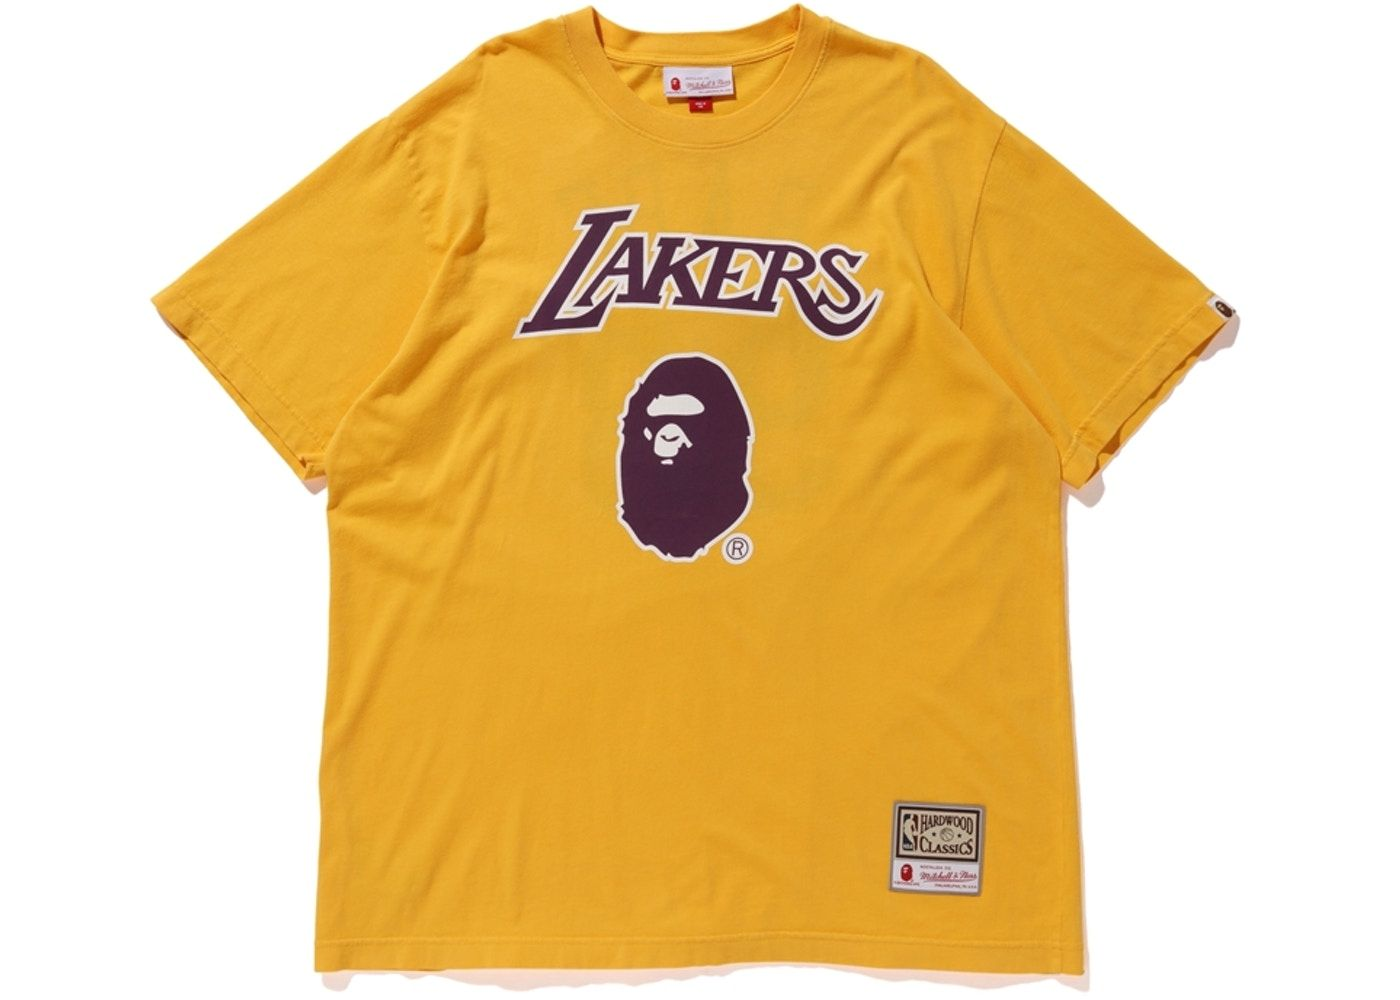 f8d5e0c92 BAPE x Mitchell   Ness Lakers Tee Yellow in 2019